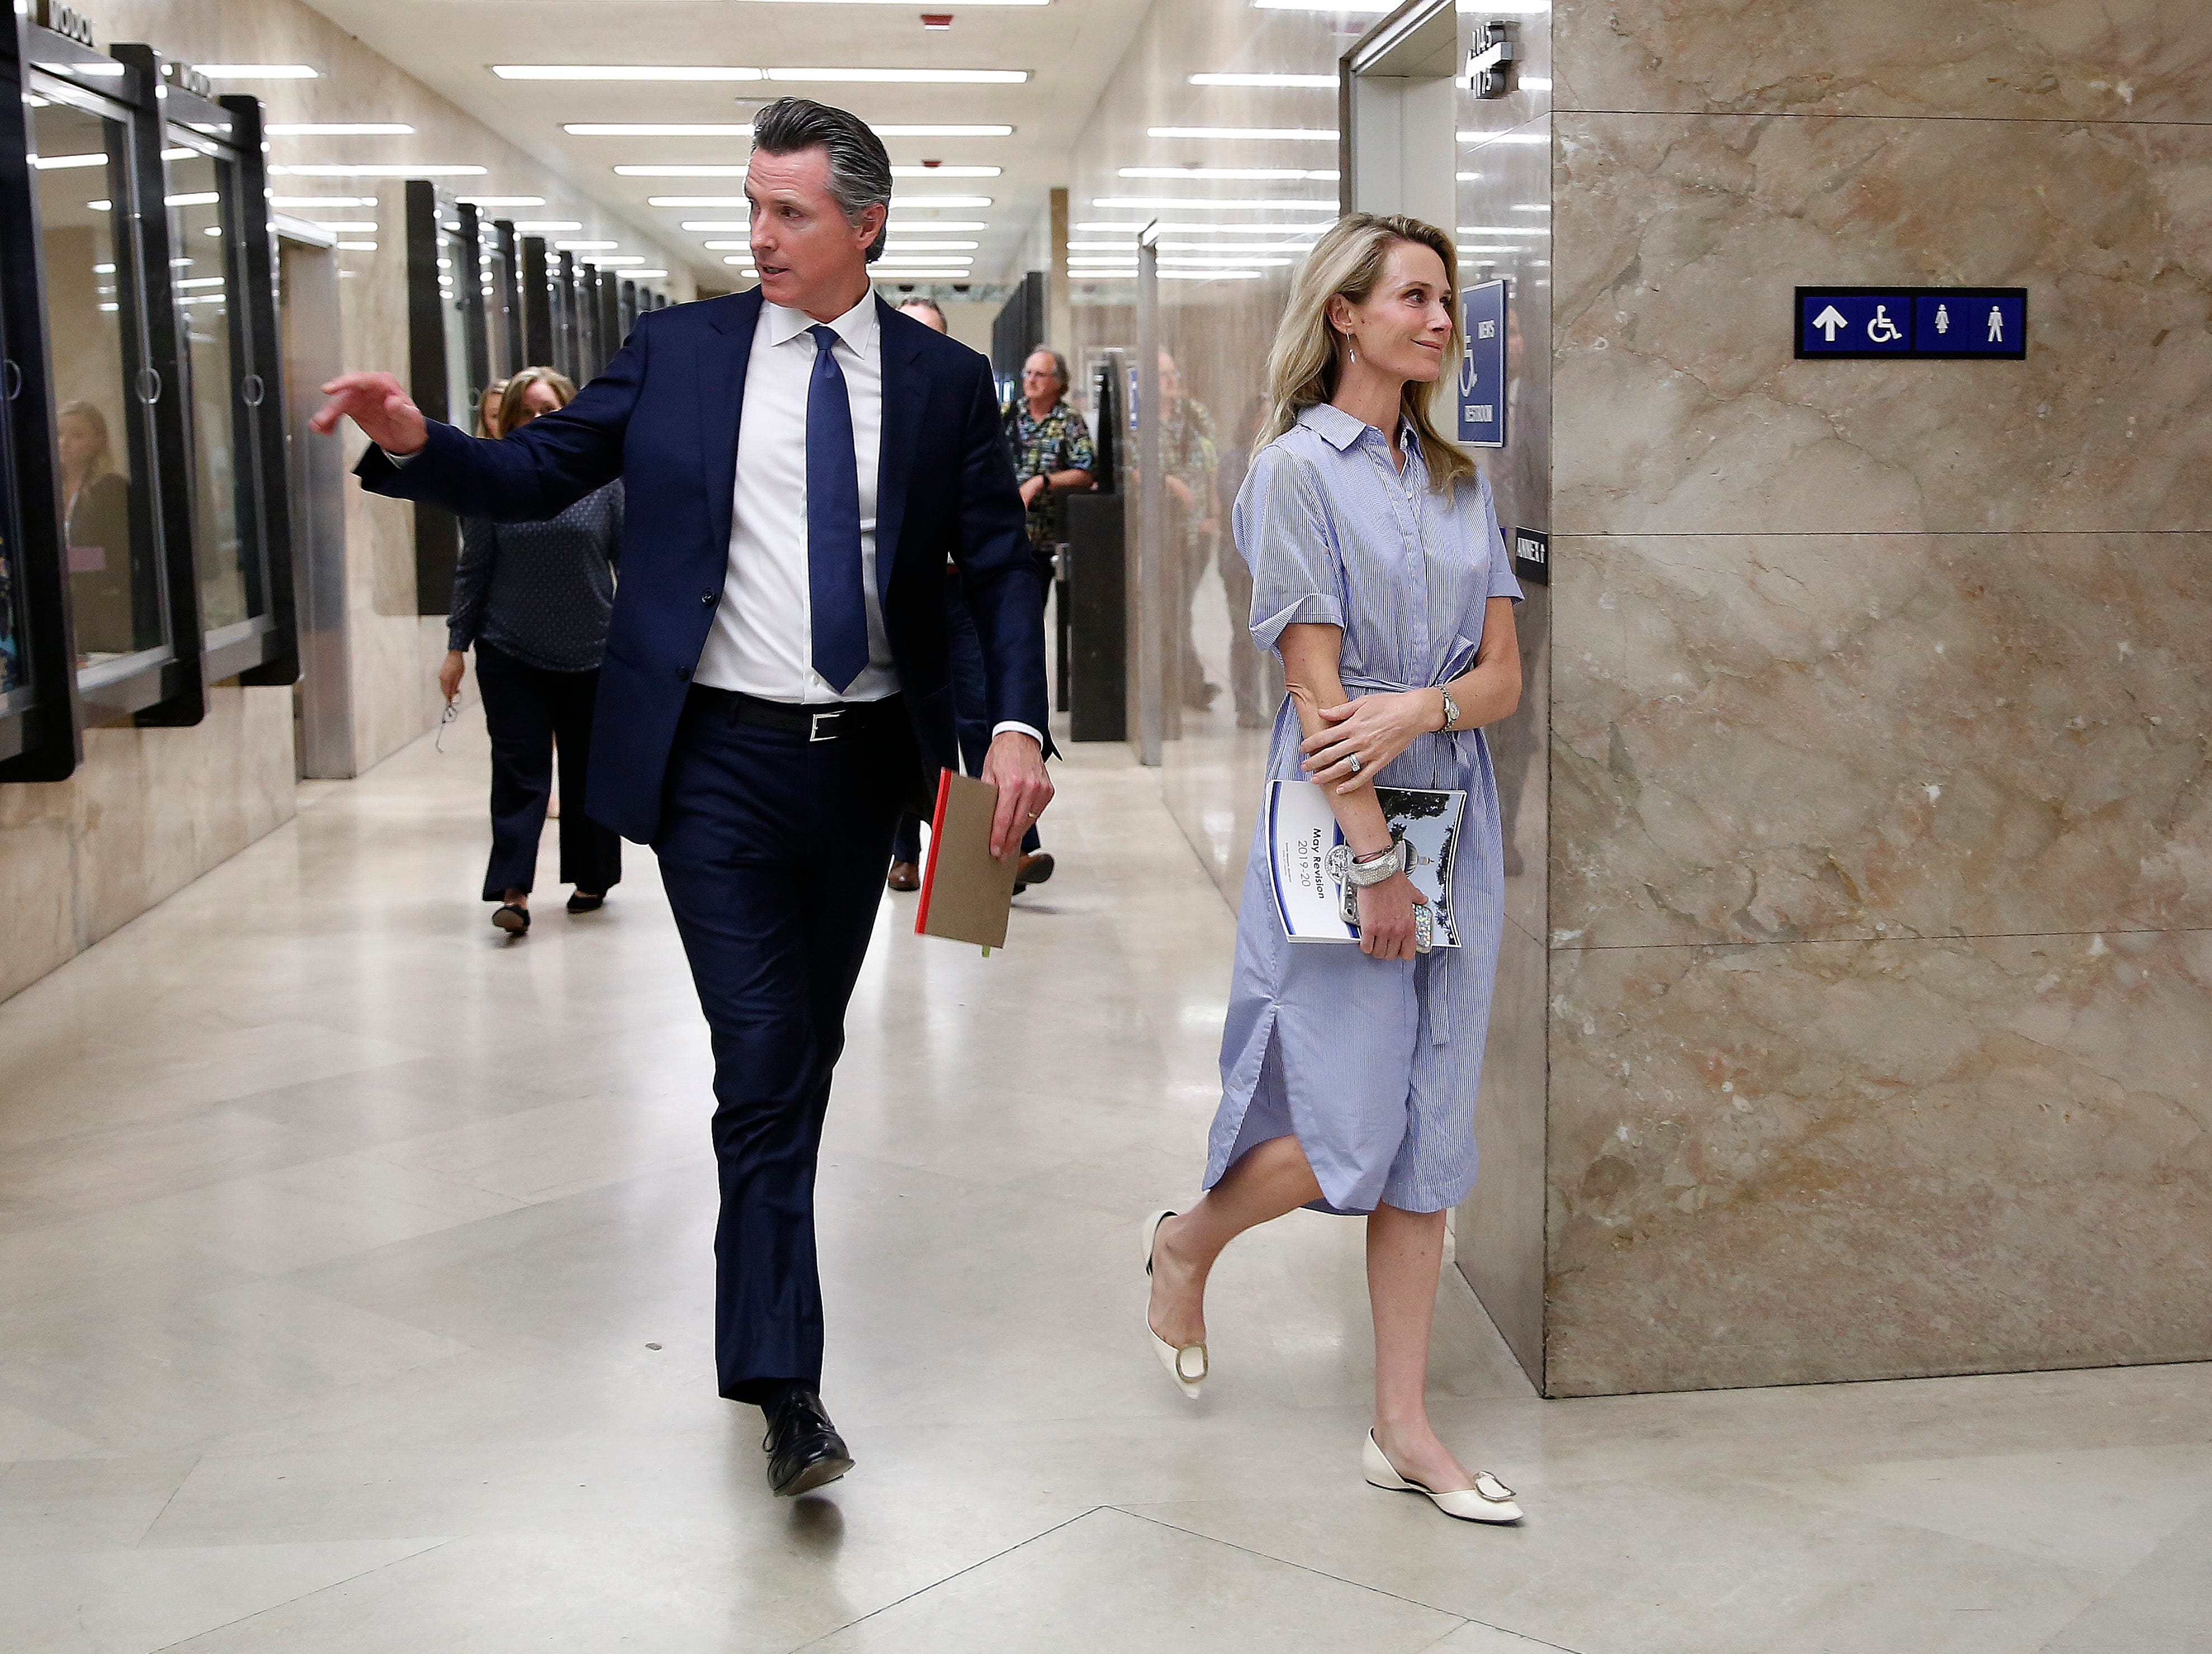 Gov. Gavin Newsom and his wife, First Partner Jennifer Siebel Newsom, return to the Governor's Office after he unveiled his revised 2019-2020 state budget at a news conference Thursday, May 9, 2019, in Sacramento.